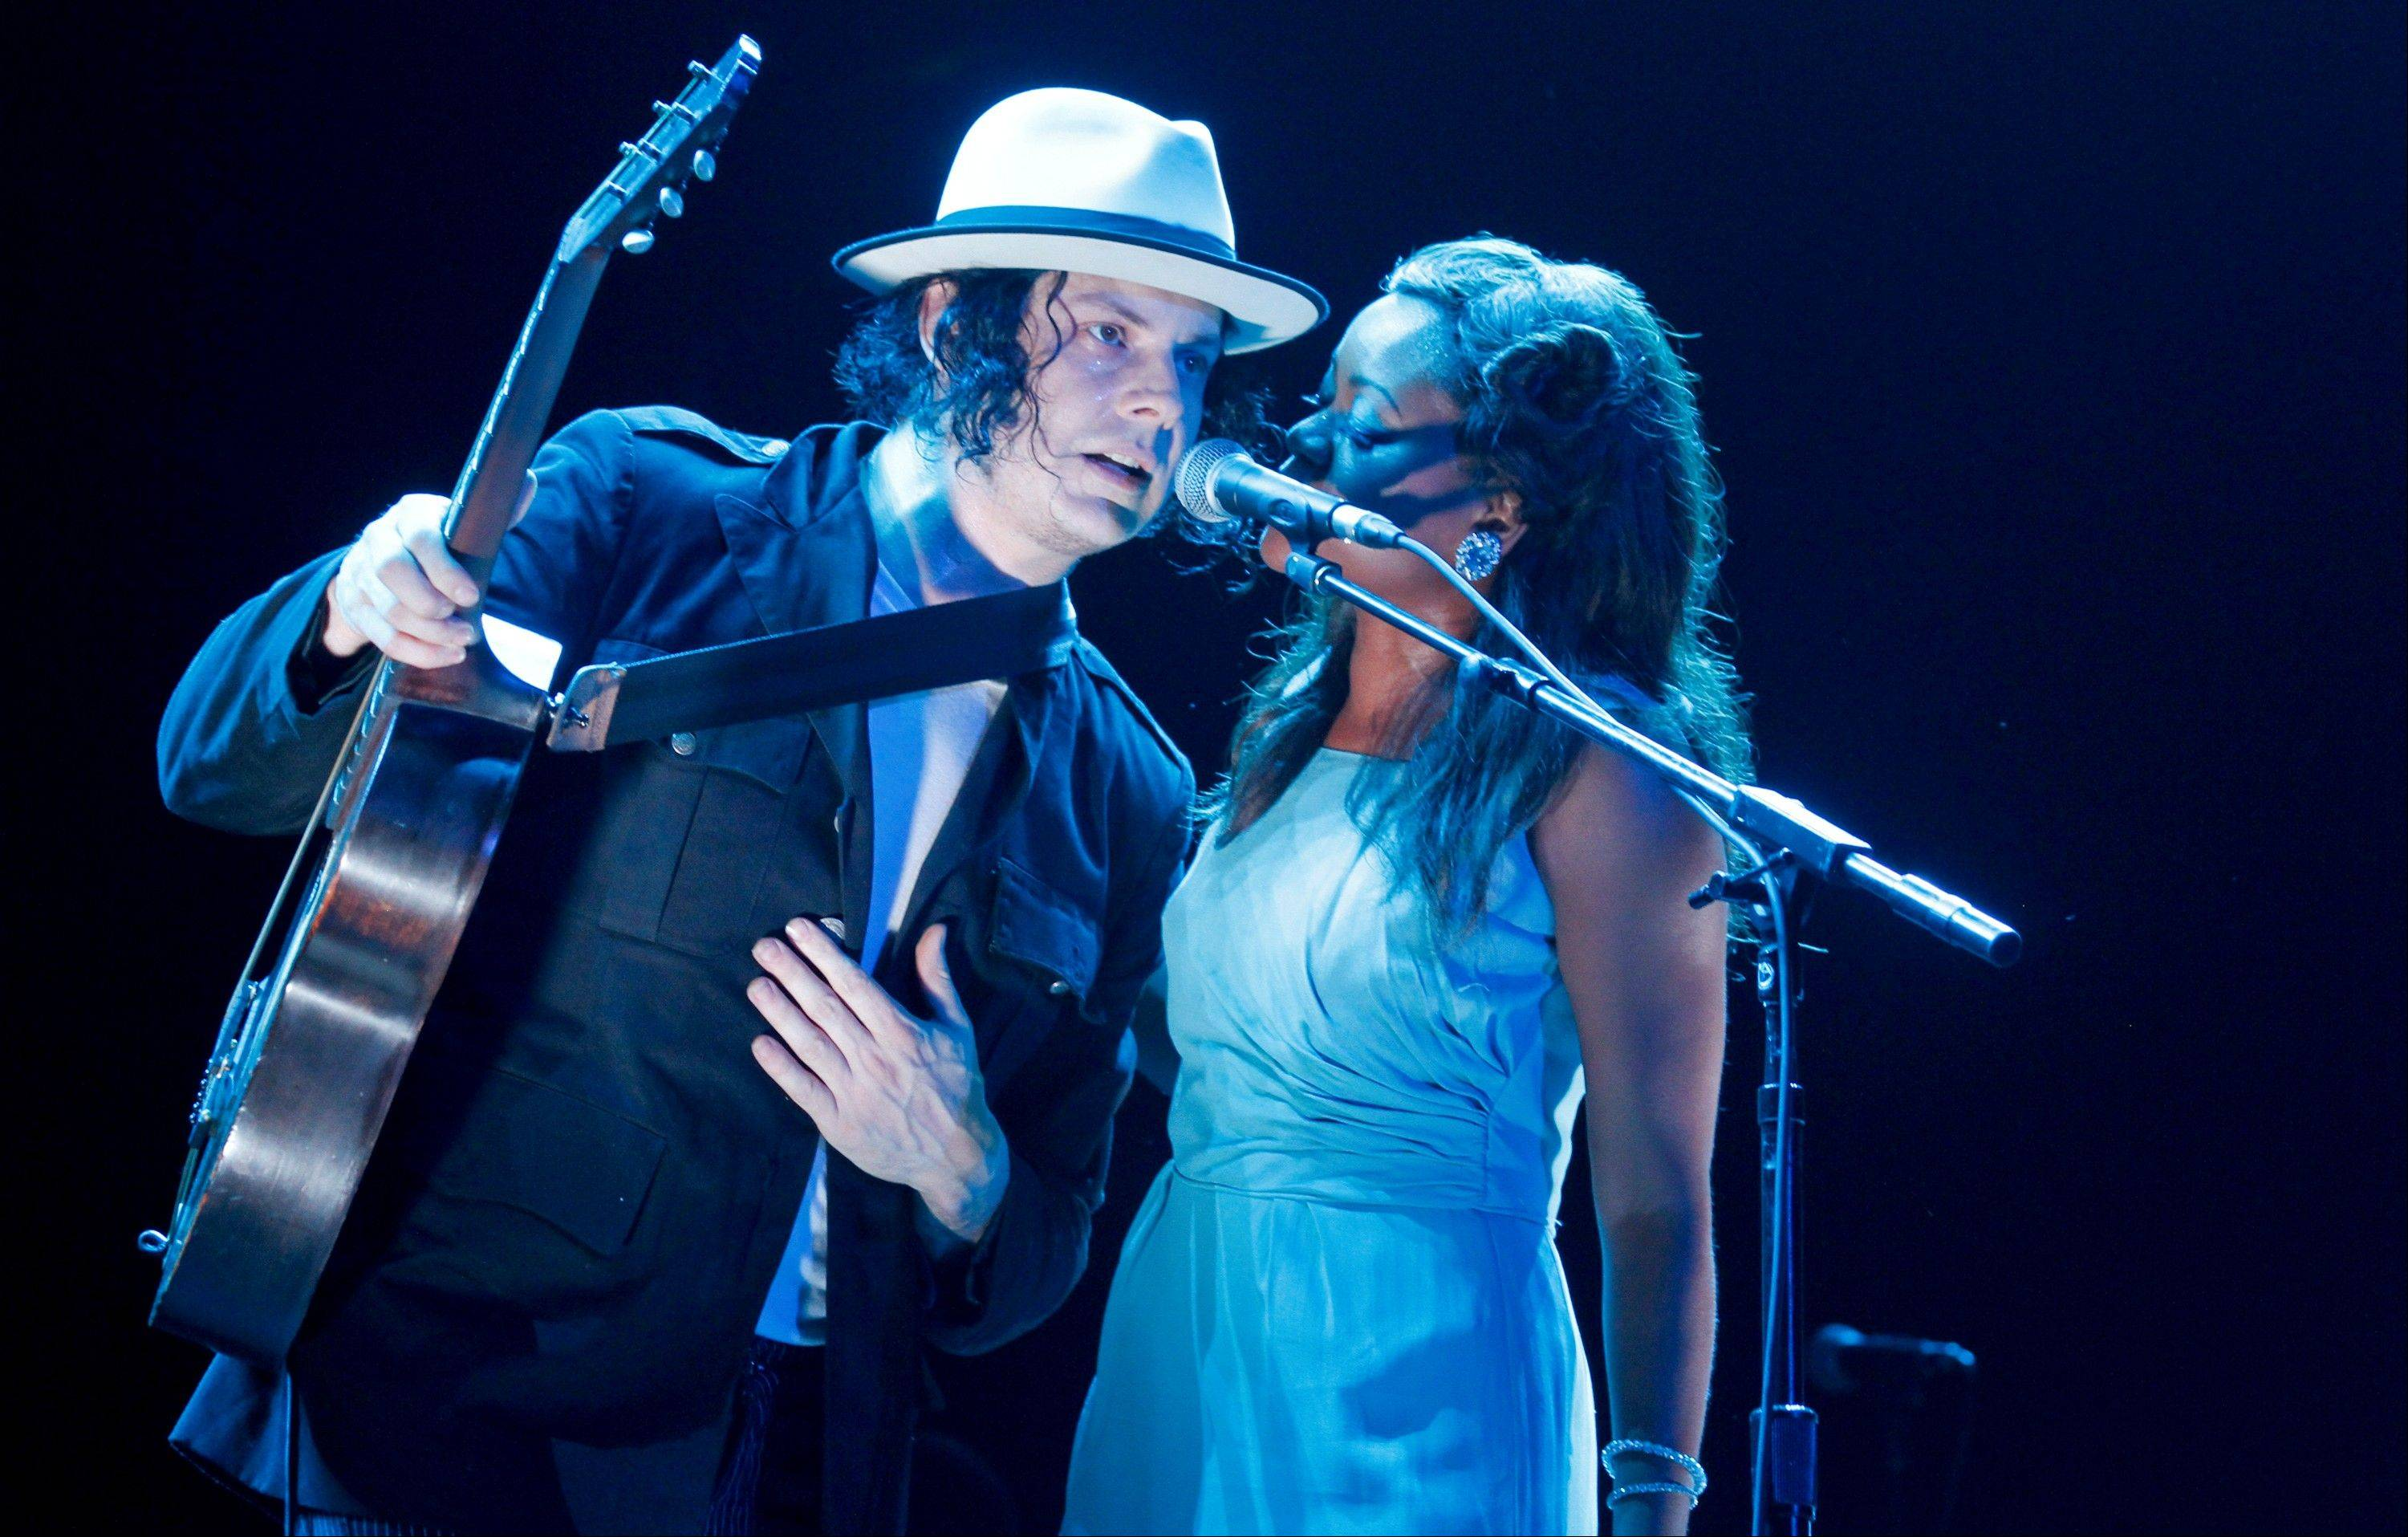 Jack White, Kitty and Joe Jonas were among the winners of the O Music Awards wrapping up with performances in New York, Los Angeles and Nashville on Thursday.